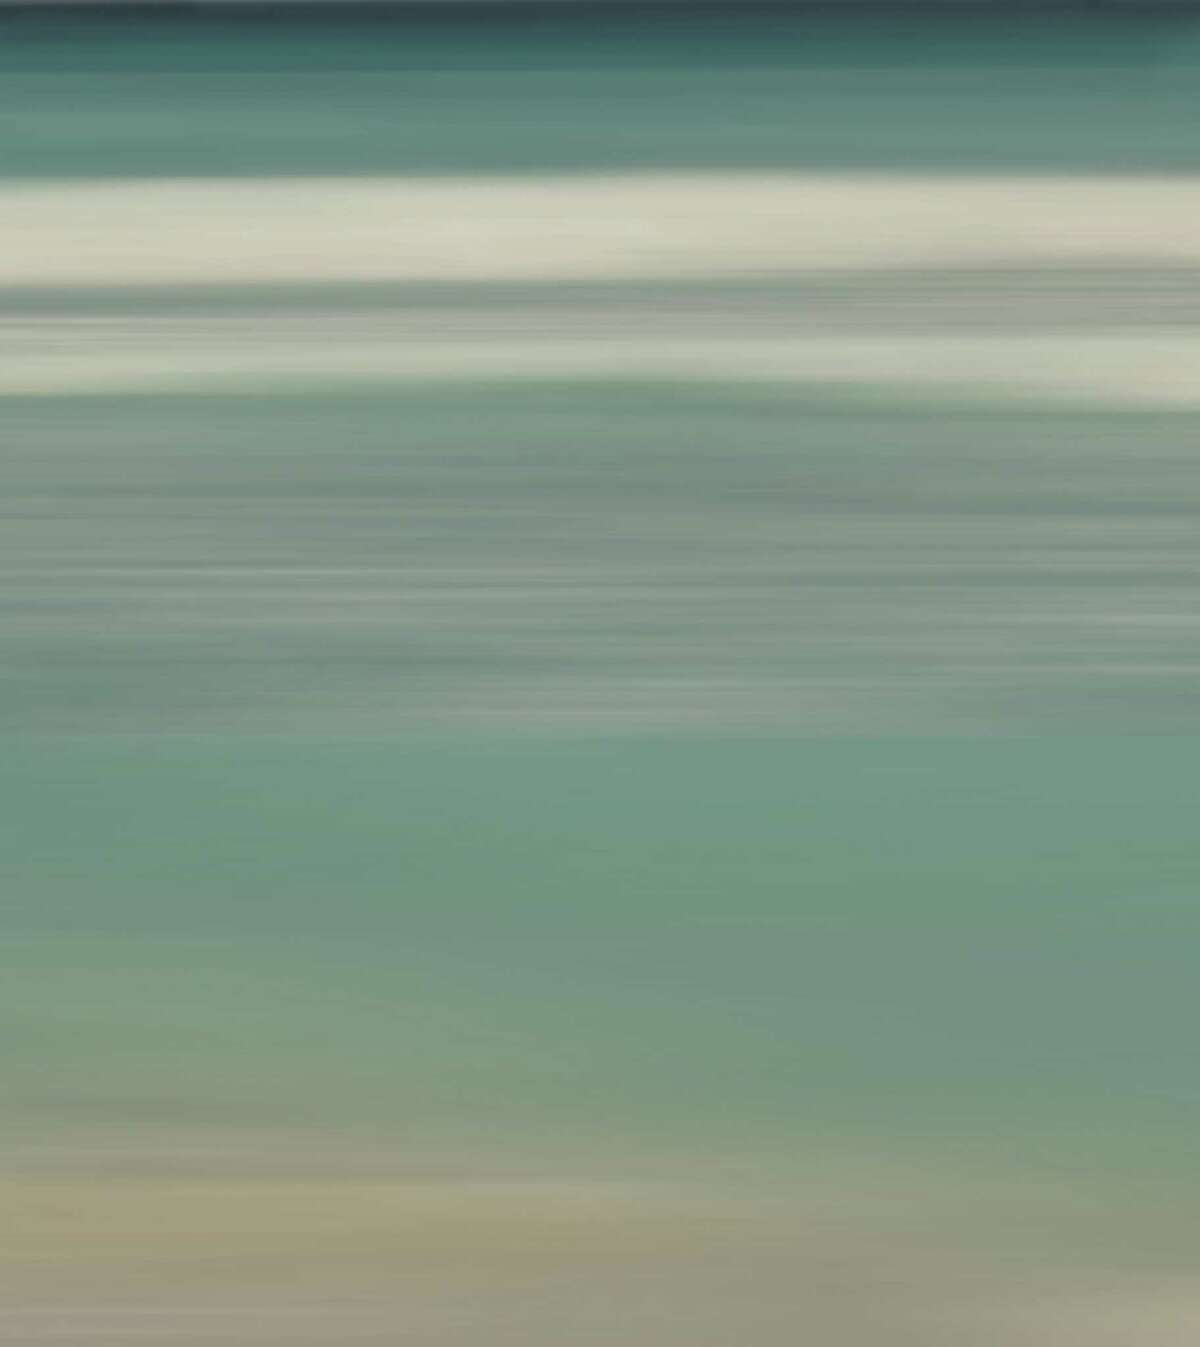 """Bonnie Edelman's """"Surf and Sand"""" is among the water-themed artwork on display at Heather Gaudio Fine Arts in New Canaan in the exhibition """"Waterways II."""""""